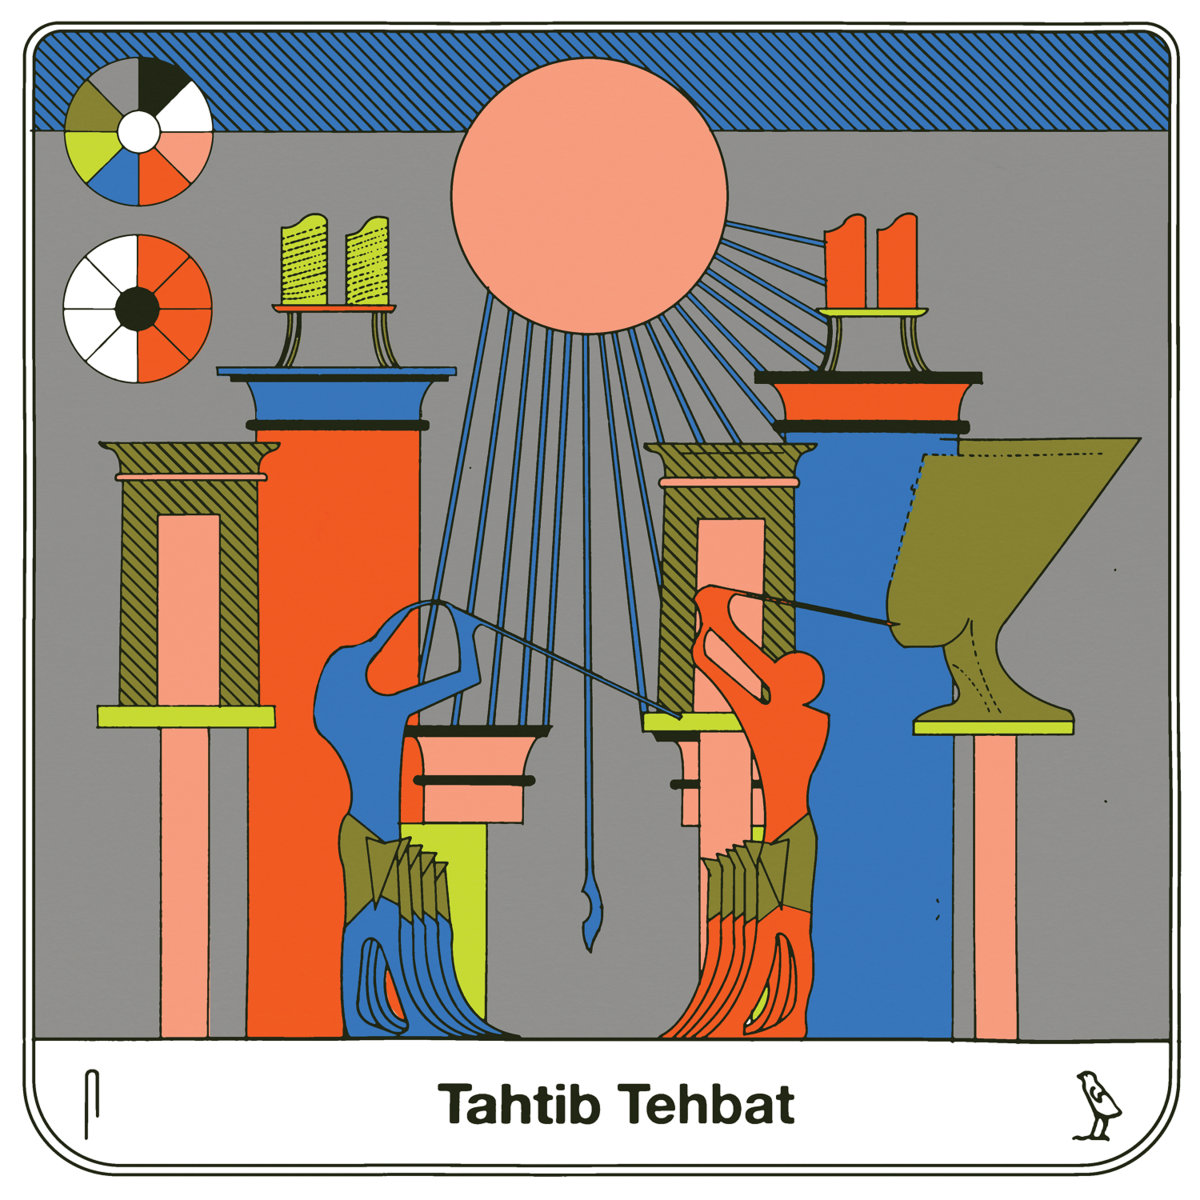 Sea Urchin turn library music into future music on Tahtib